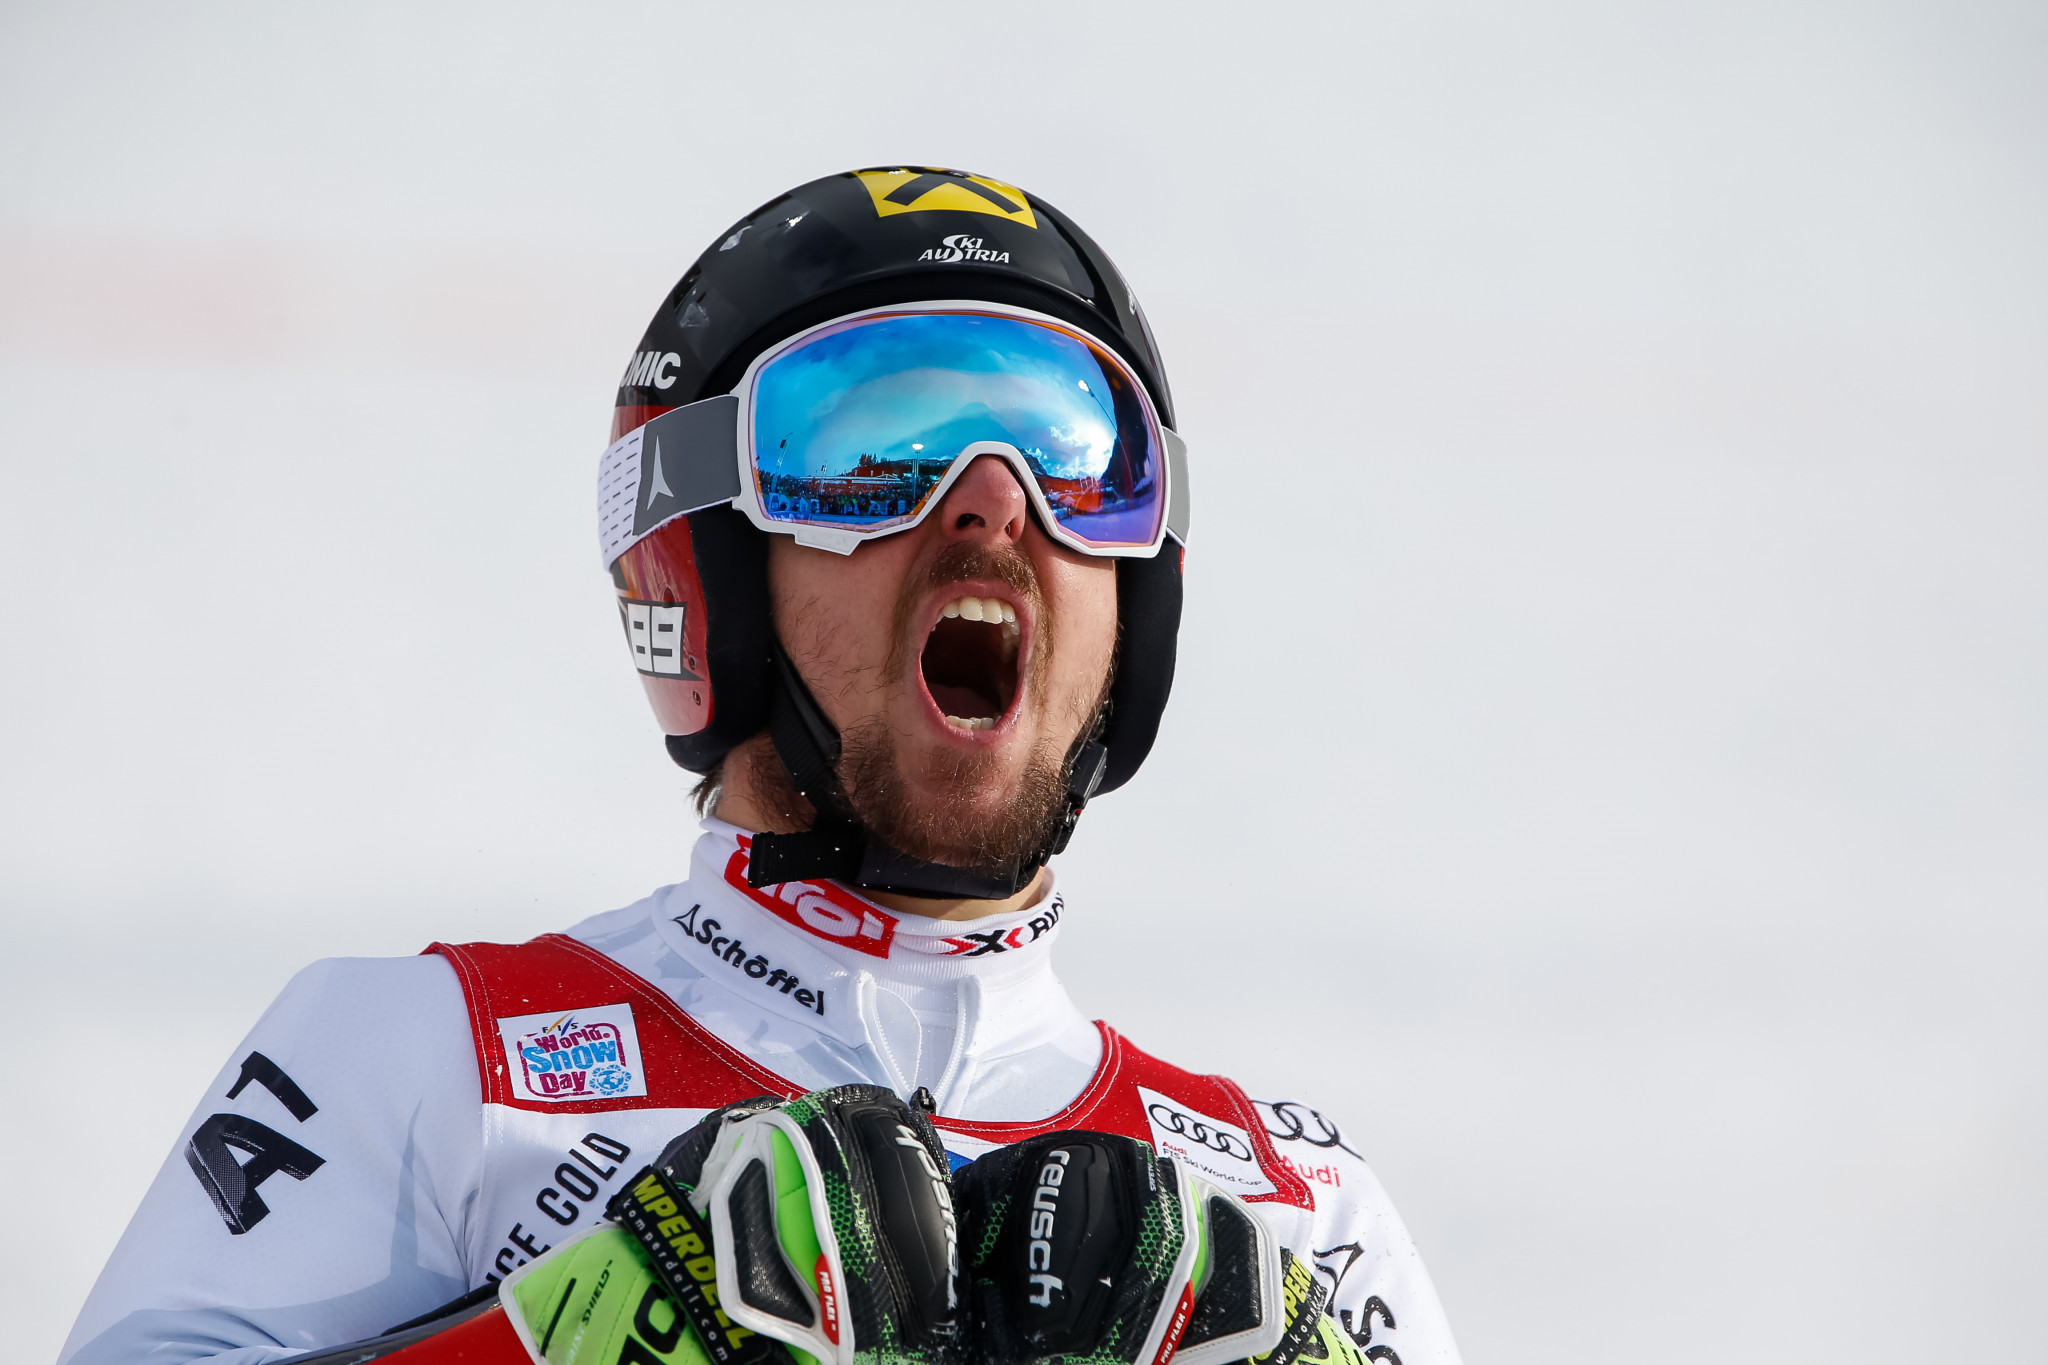 Hirscher cruises to record-breaking giant slalom success at FIS Alpine Skiing World Cup in Alta Badia